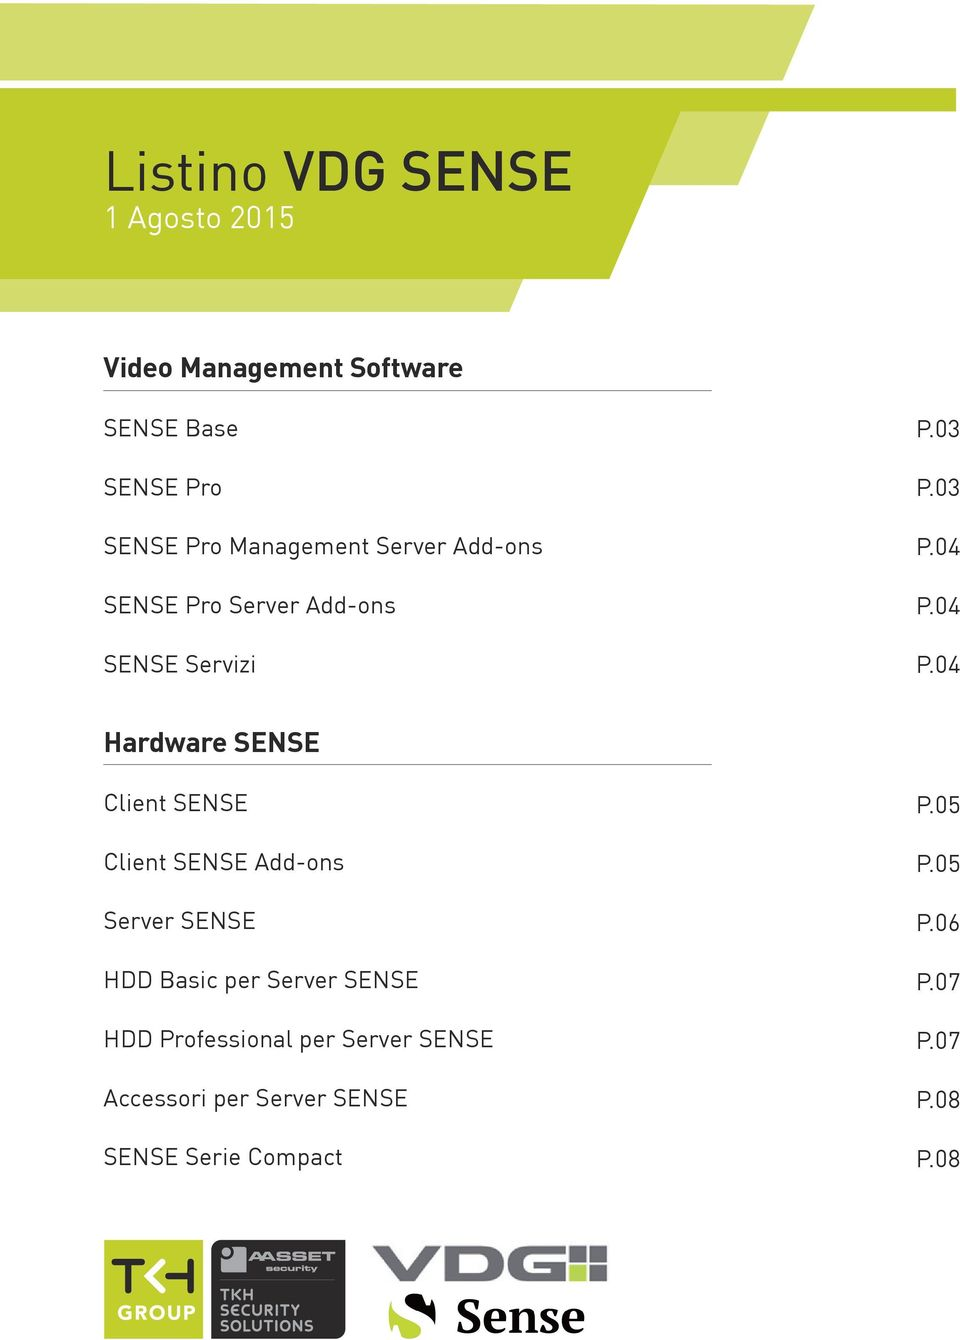 04 P.04 Hardware SENSE Client SENSE Client SENSE Add-ons Server SENSE HDD Basic per Server